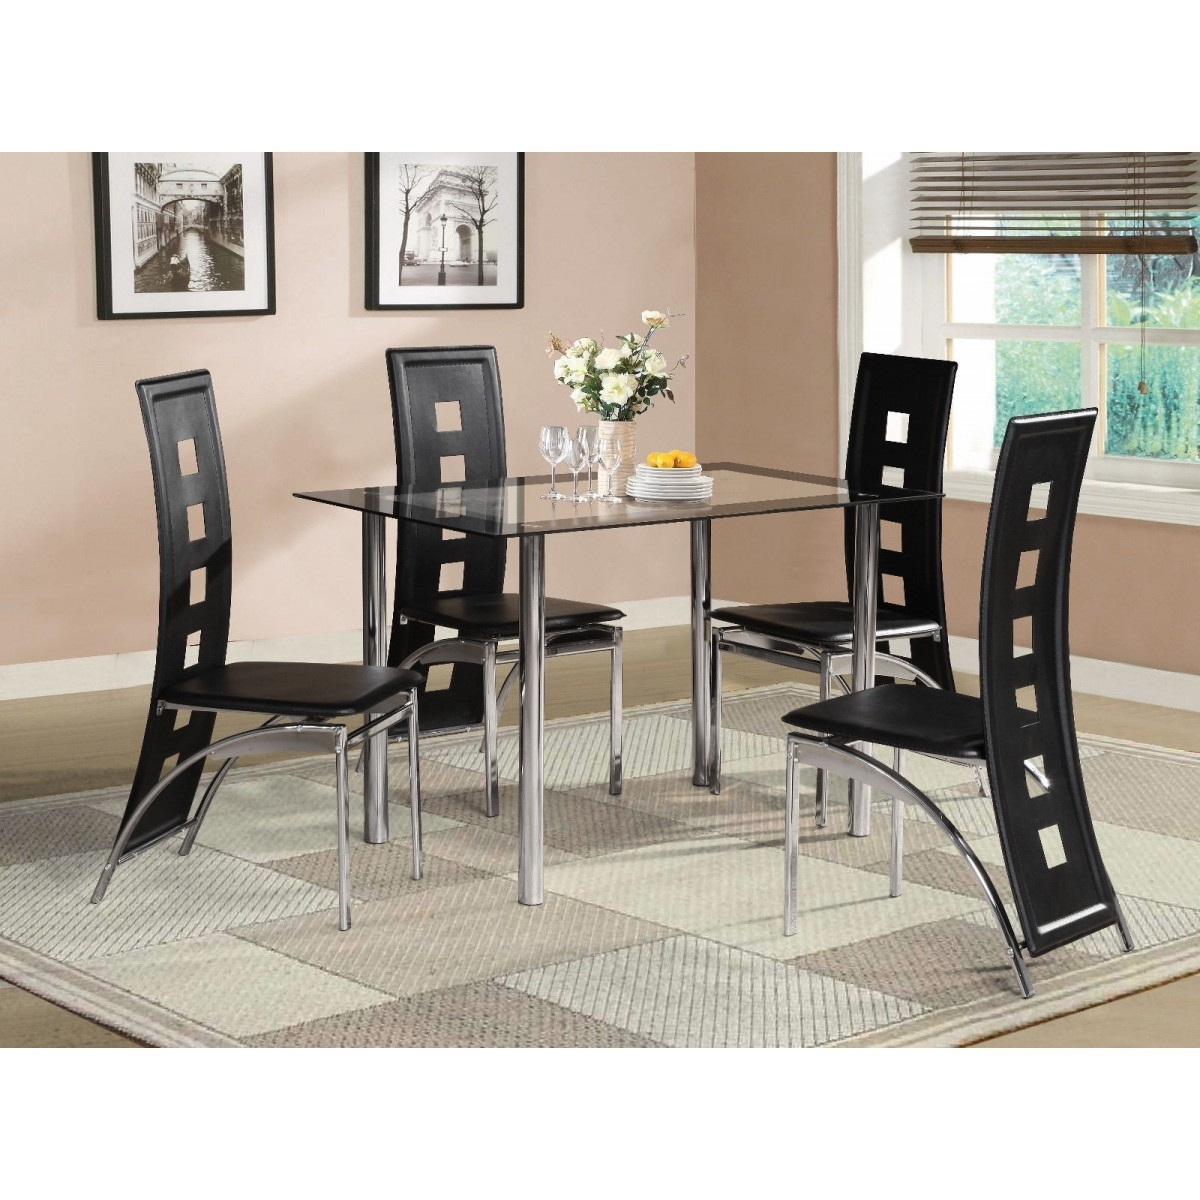 Black Glass Dining Tables With 6 Chairs Inside Favorite Black Glass Dining Room Table Set With 4 Or 6 Chairs – Home Done (Gallery 21 of 25)